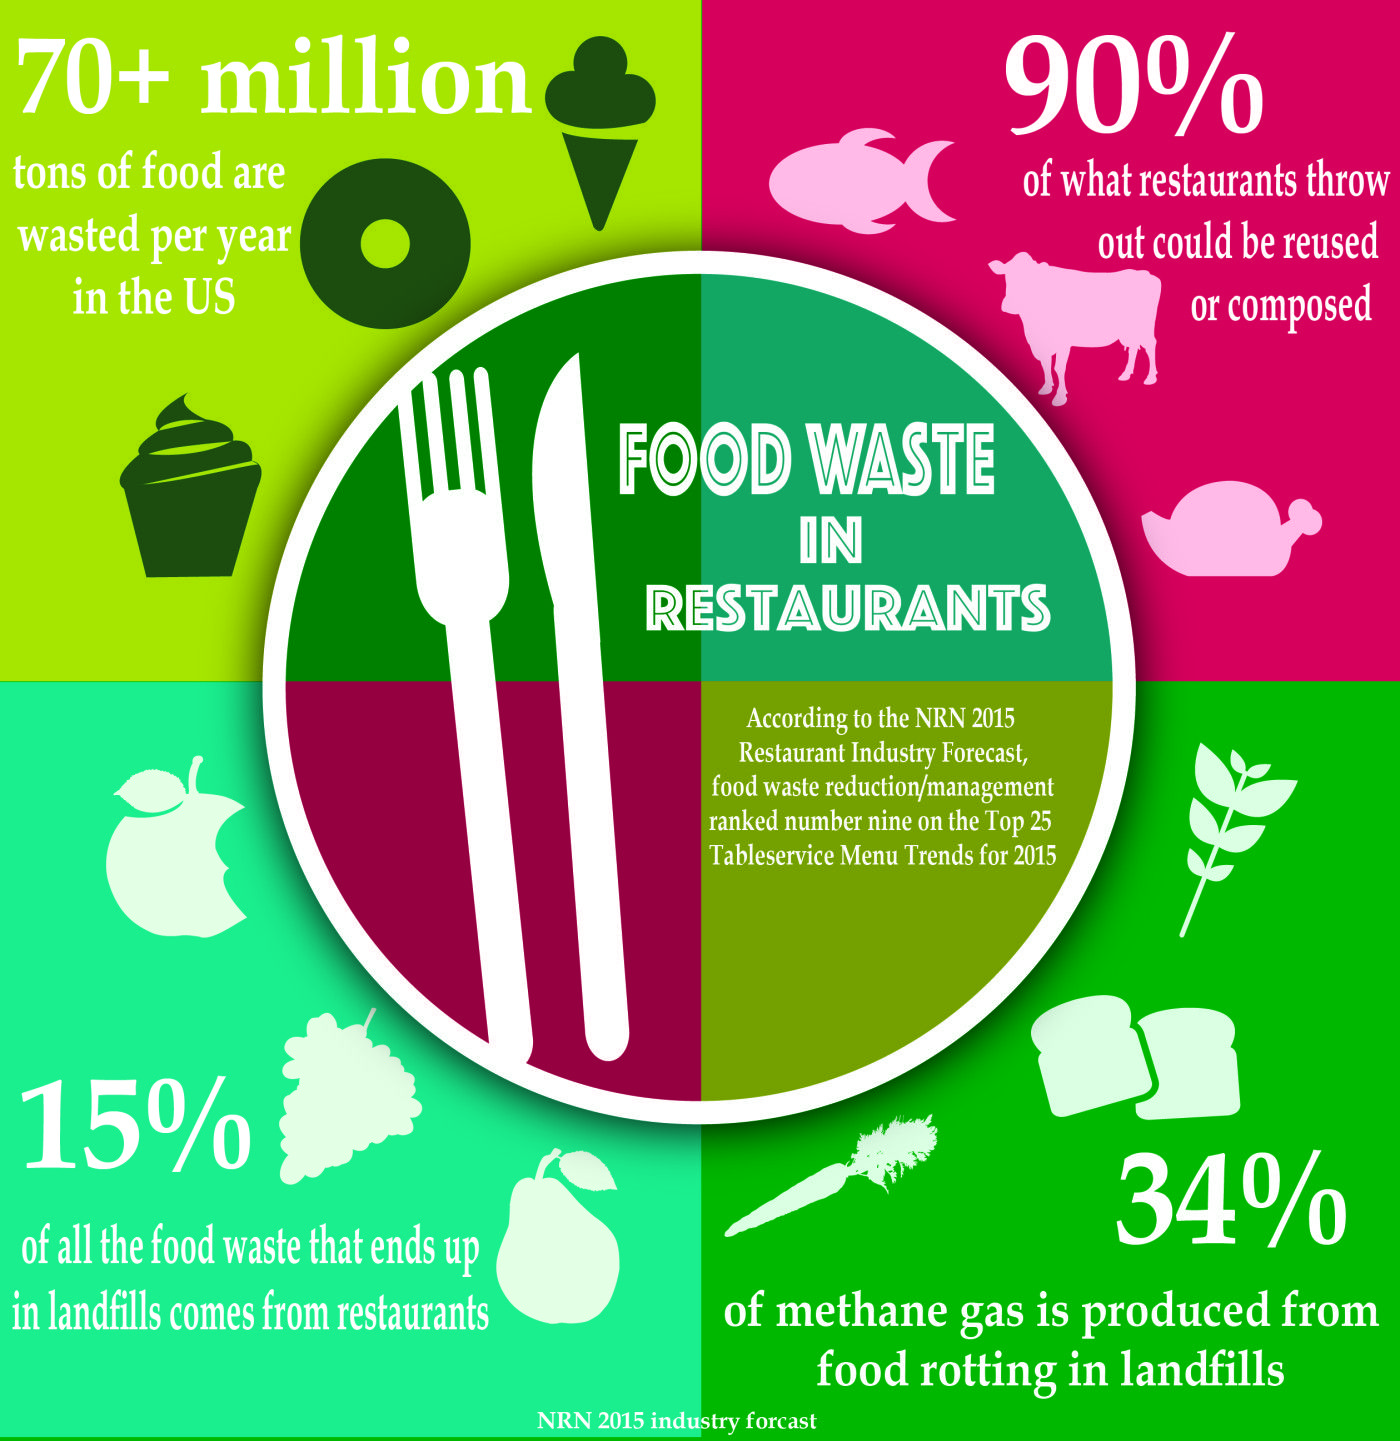 Food Waste Infographic #Business #Restaurant #Management